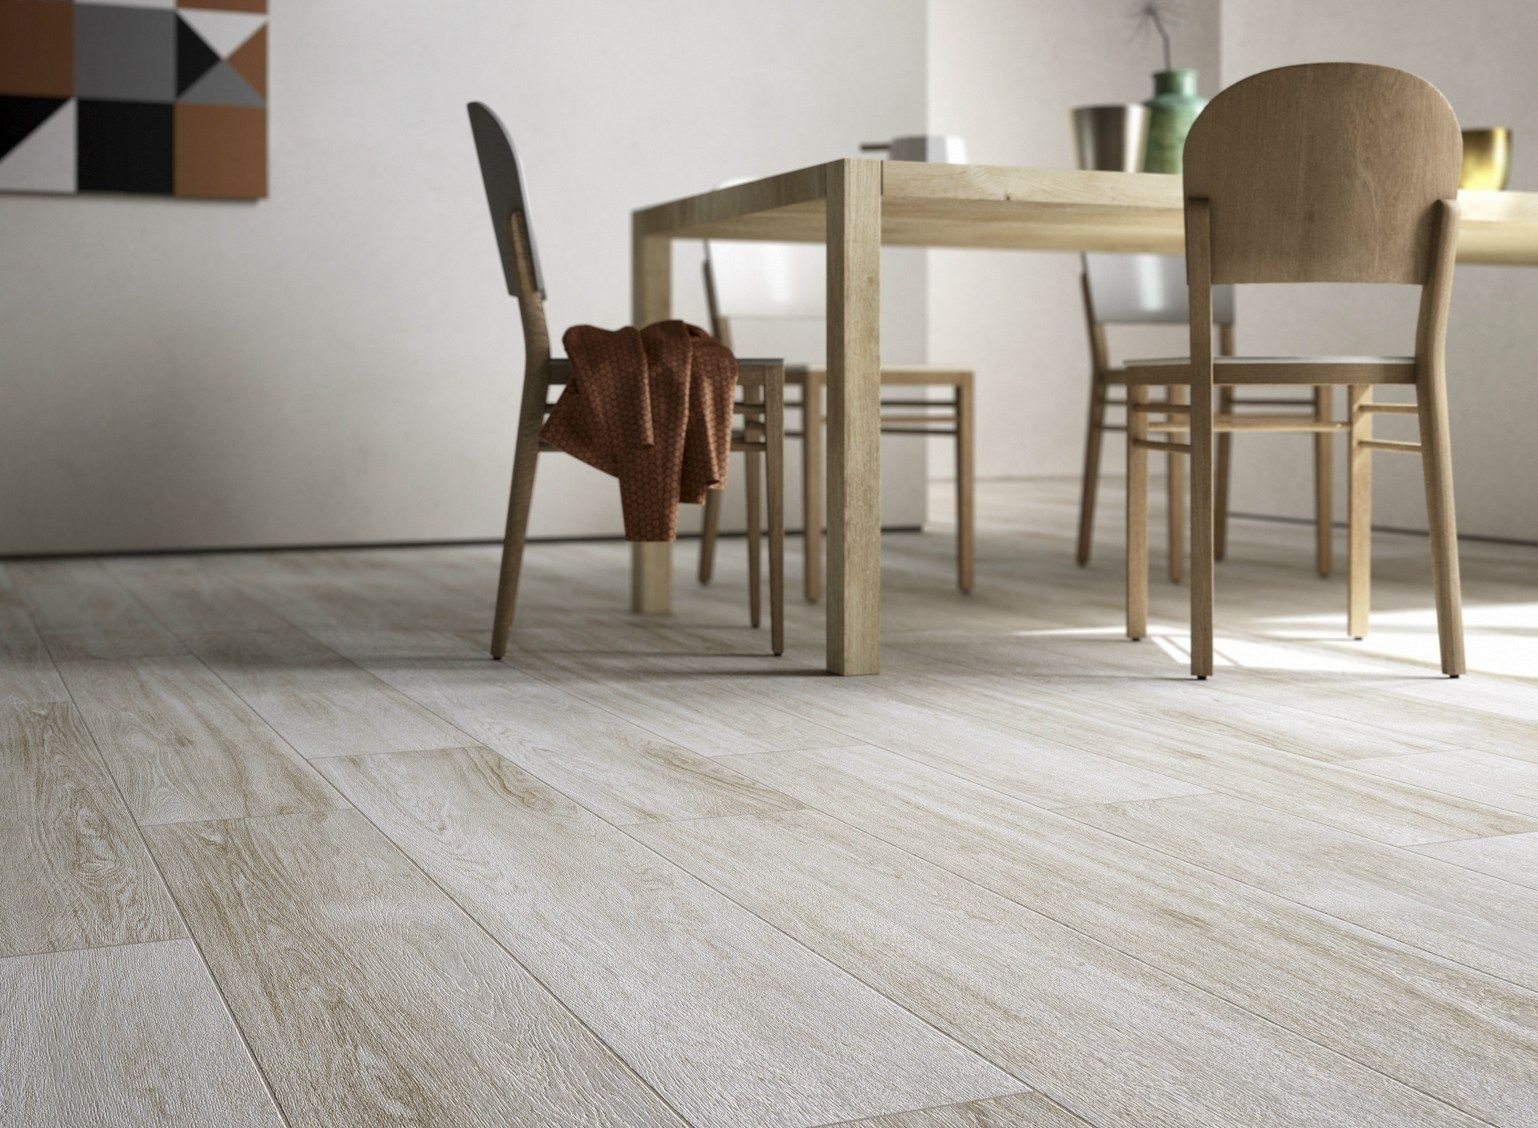 Dining area decor idea with Q-Style floor tile from Cooperativa Ceramica  d'Imola.